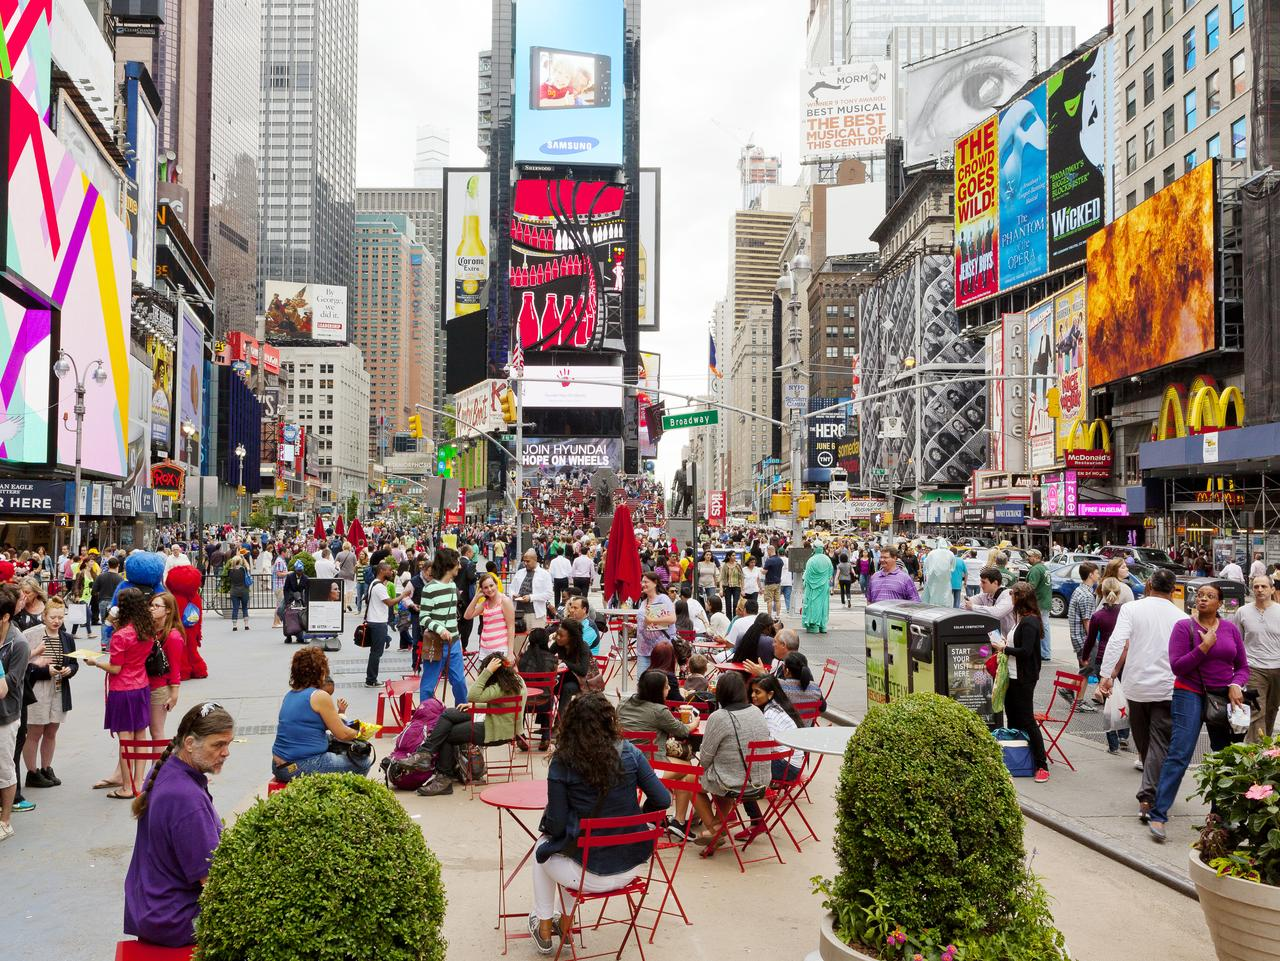 BROADWAY ... ESCAPE FEB 28: Times Square, Midtown, Manhattan